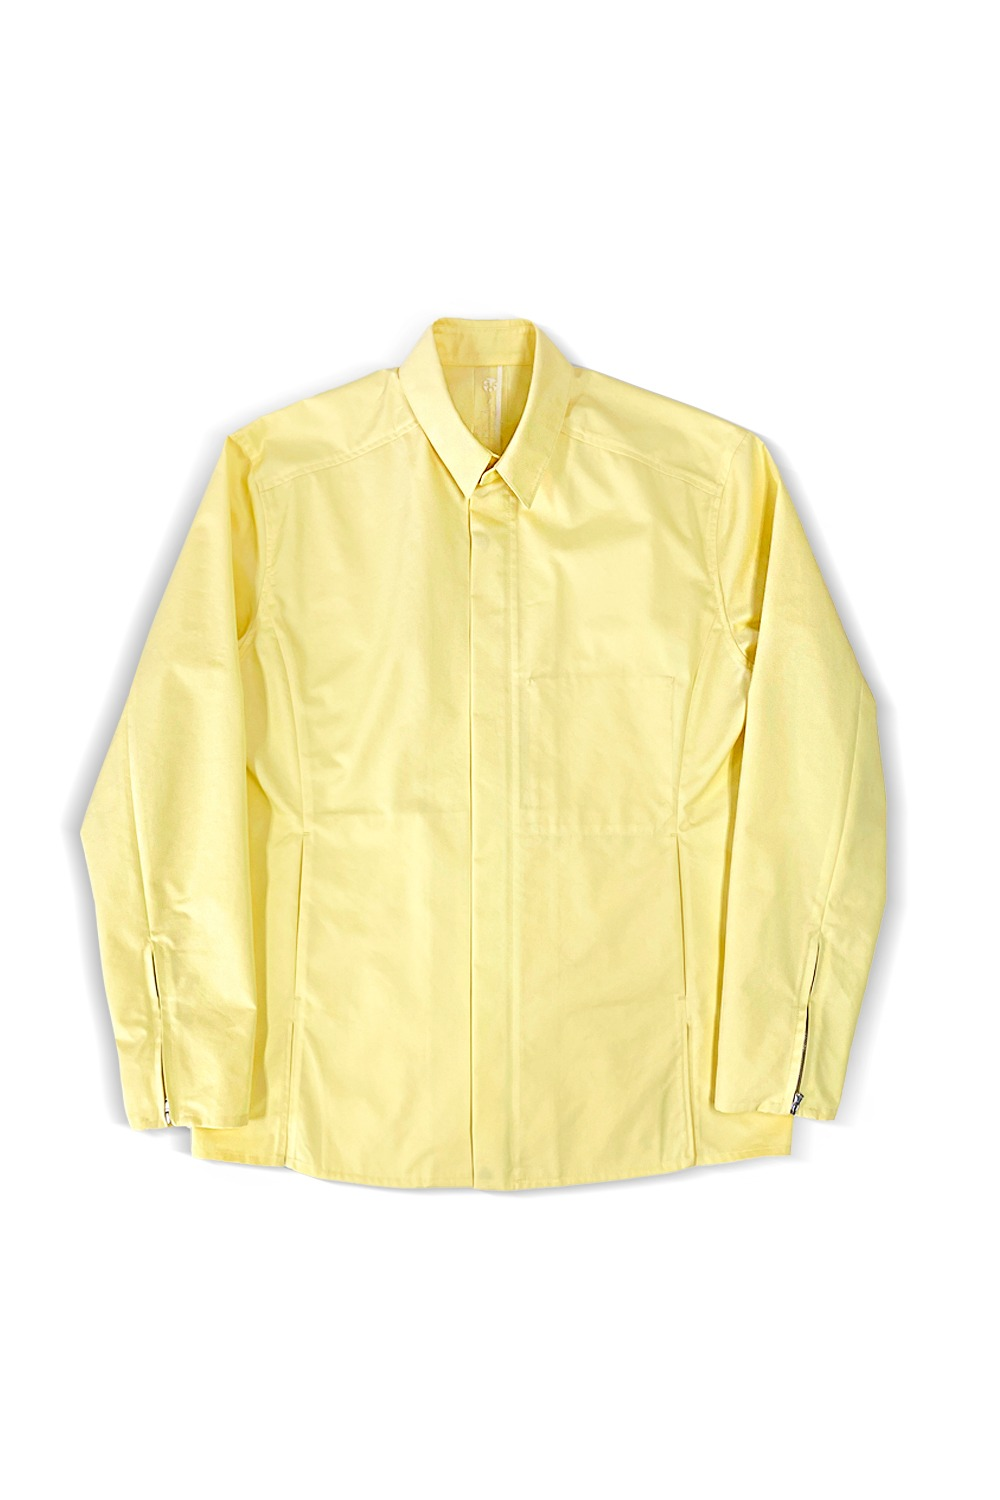 DAY / SILENCE JACKET / SAFFRON-YELLOW